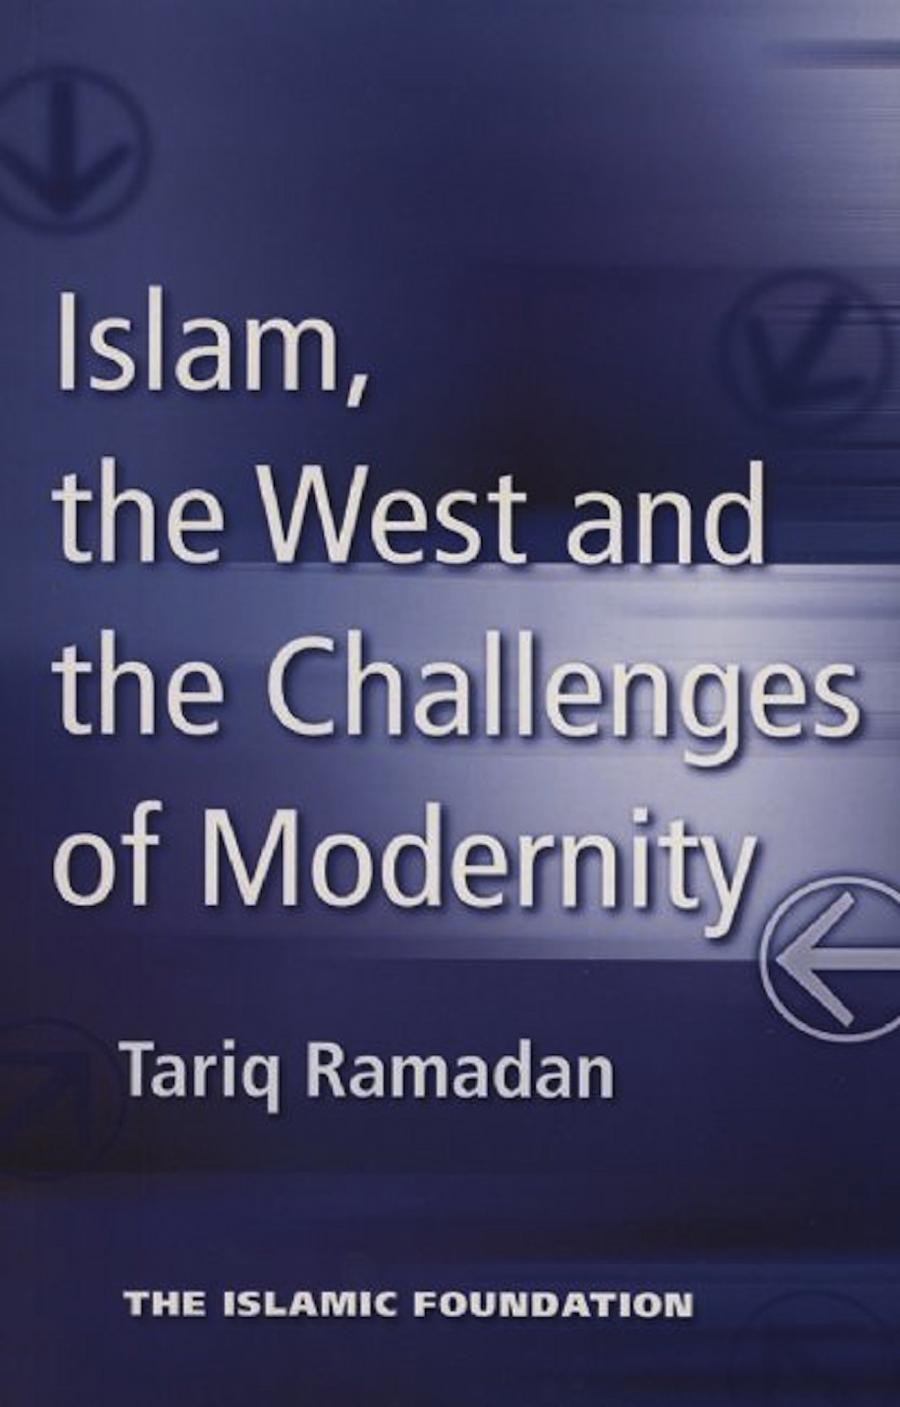 Islam, the West and the Challenges of Modernity by Tariq Ramadan